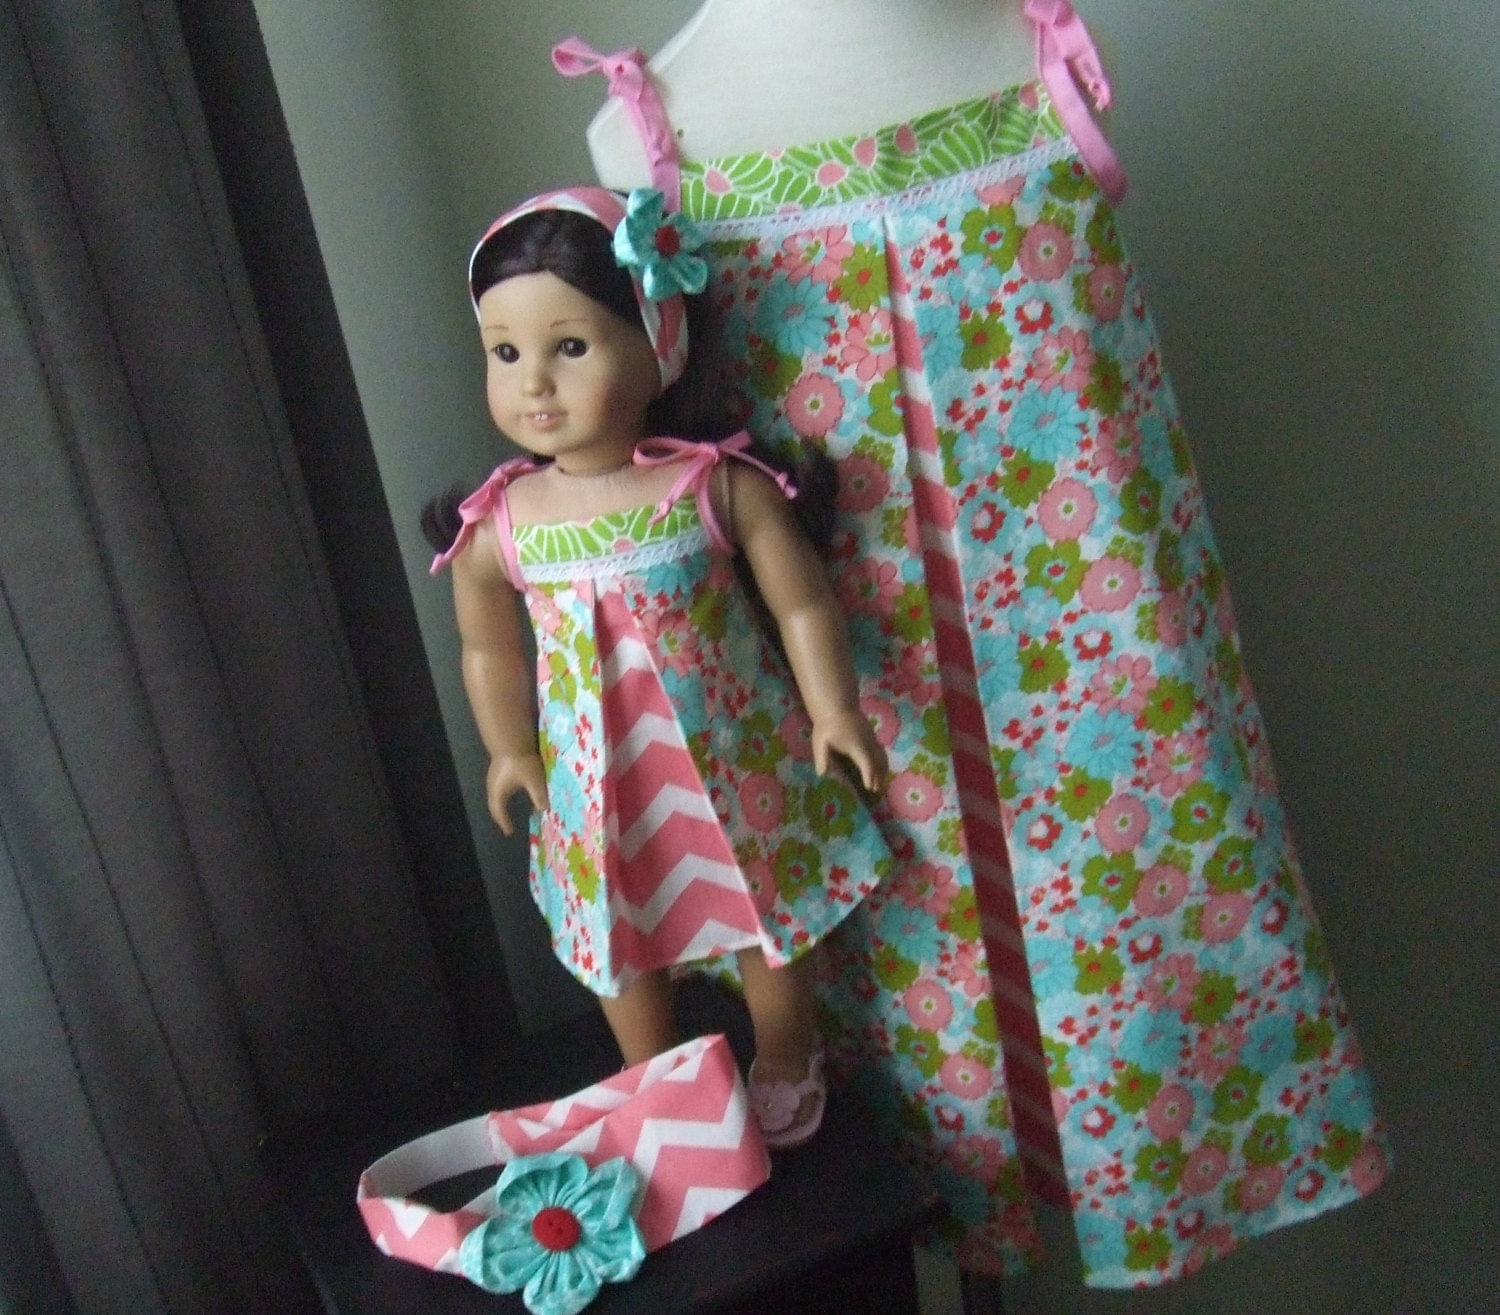 I don't make dolls, but my 2 girls each have American Girl dolls, and I have made several matching dresses, nightgowns & PJ's. I have made matching doll/girl PJ's for my nieces, and they all .